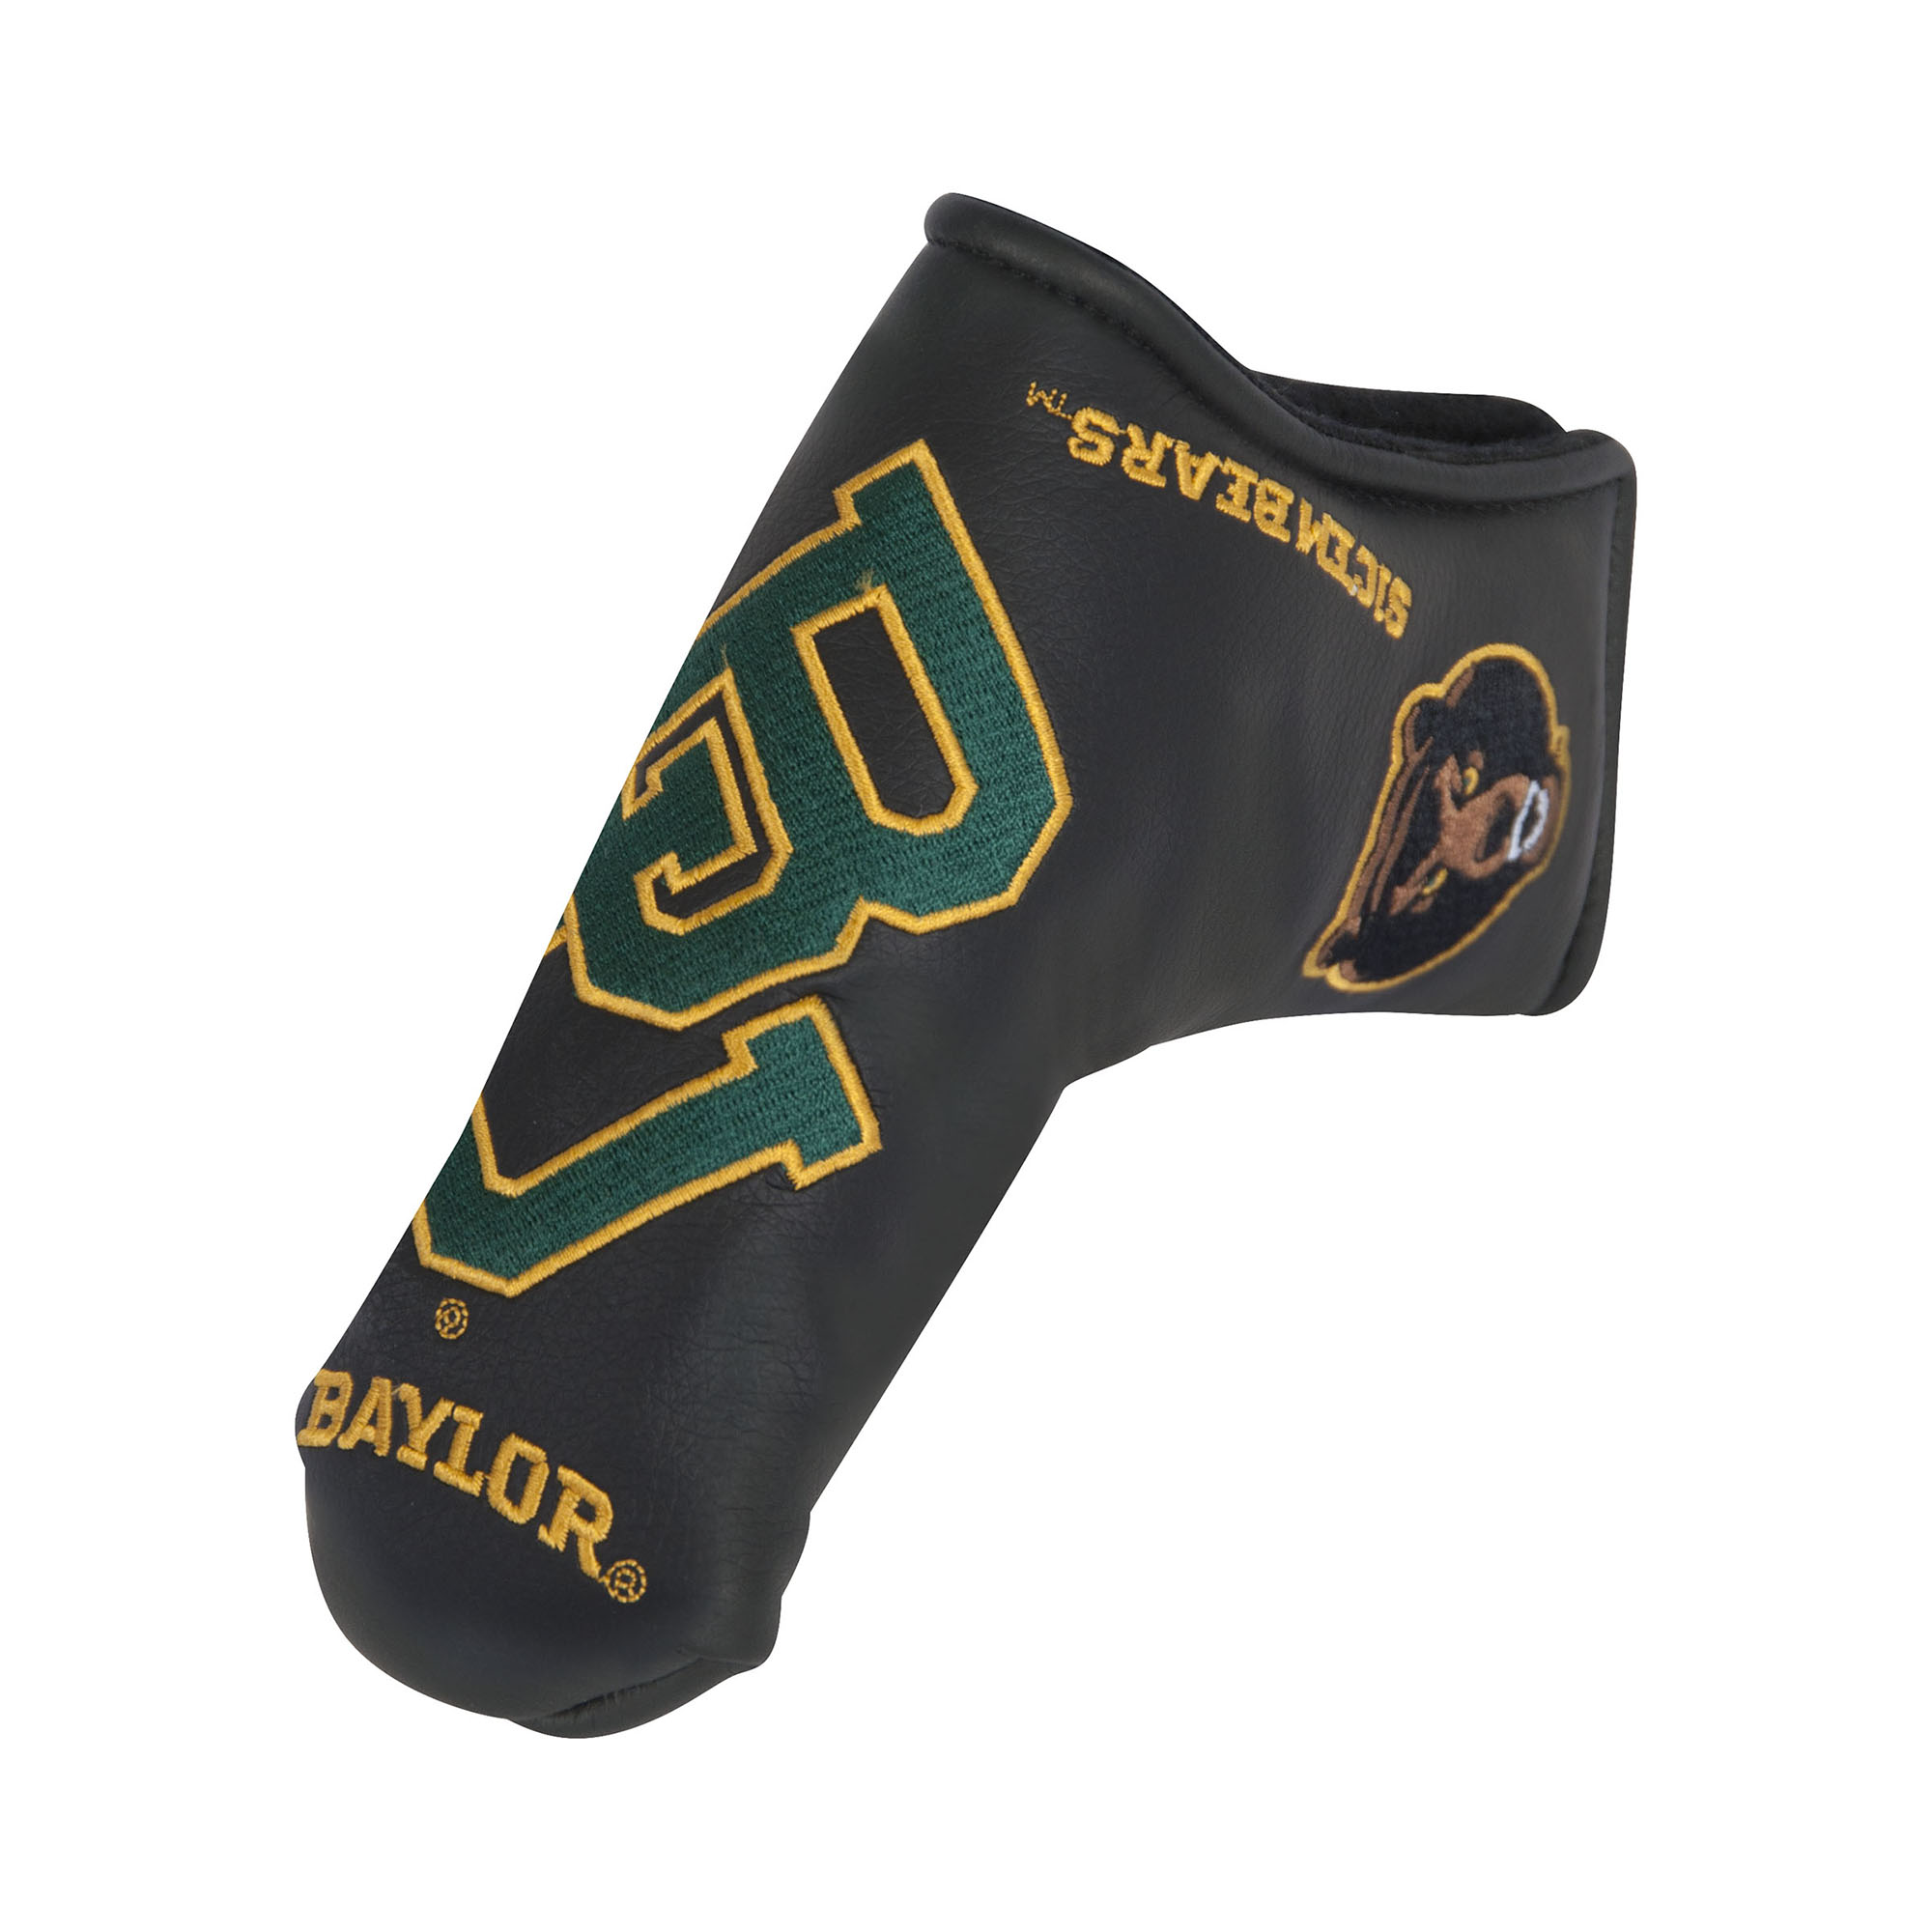 Team Effort Baylor Bears Black Blade Golf Putter Cover